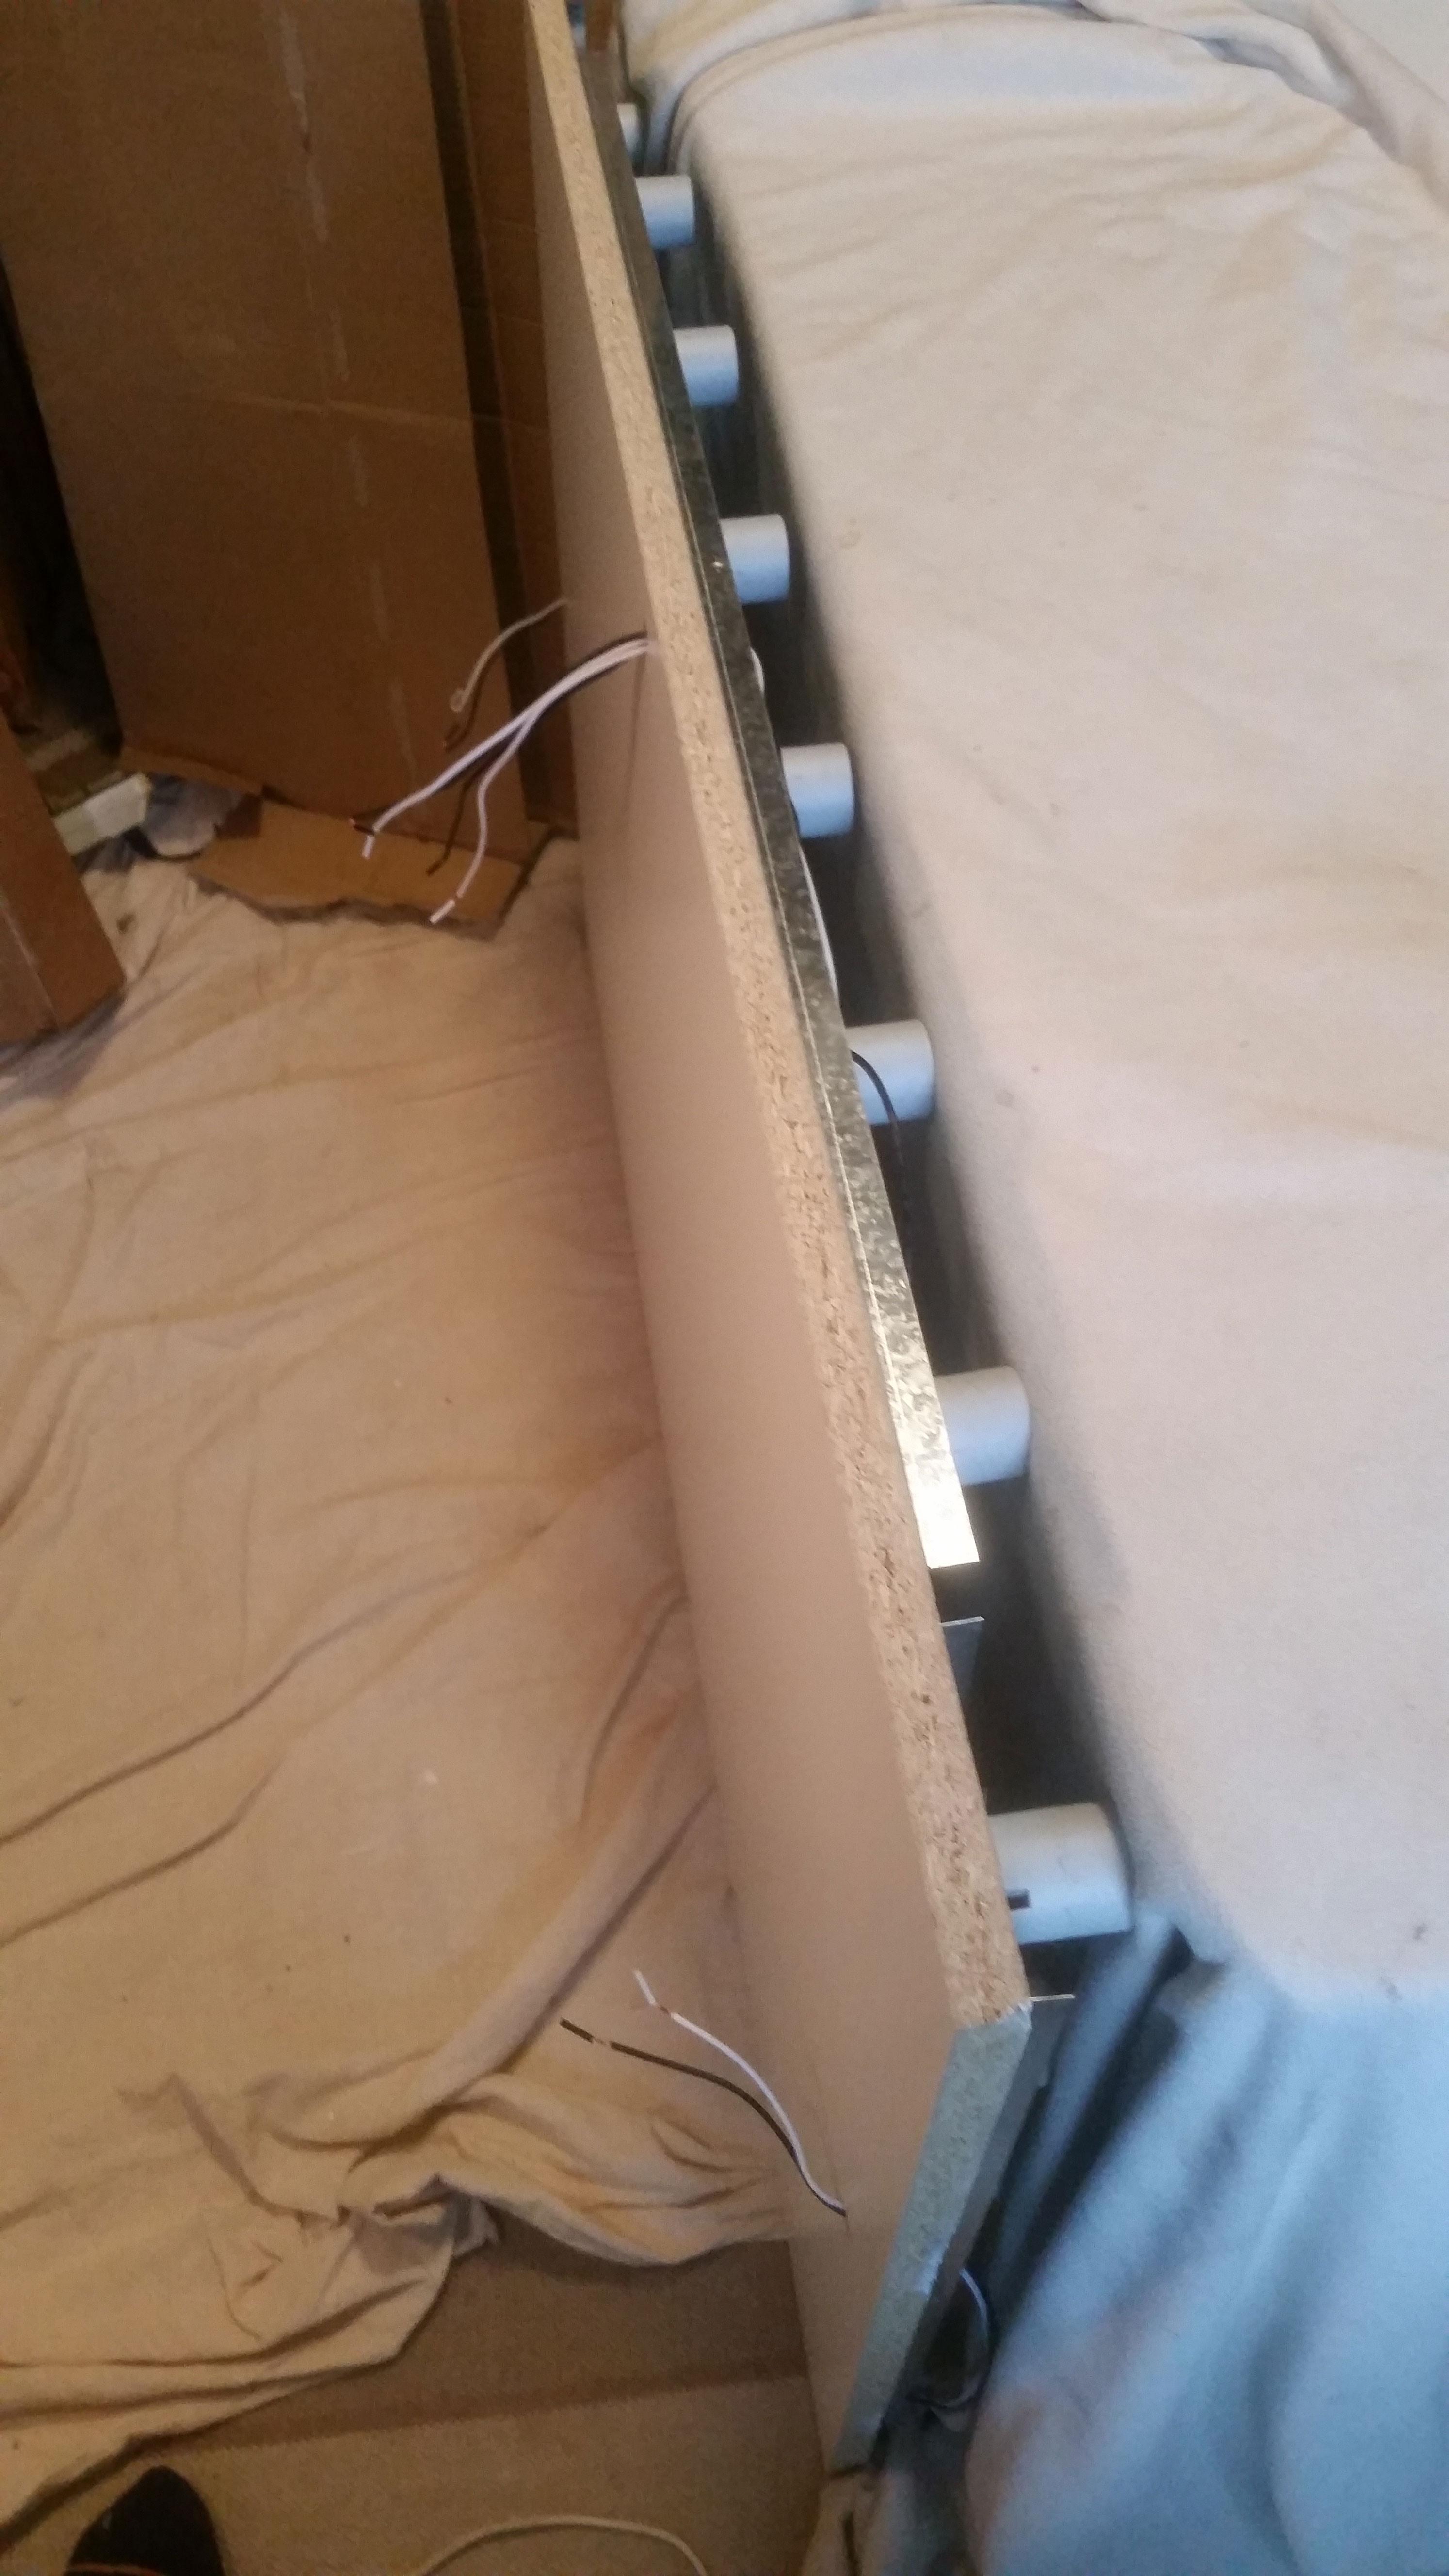 Board leaning against padding